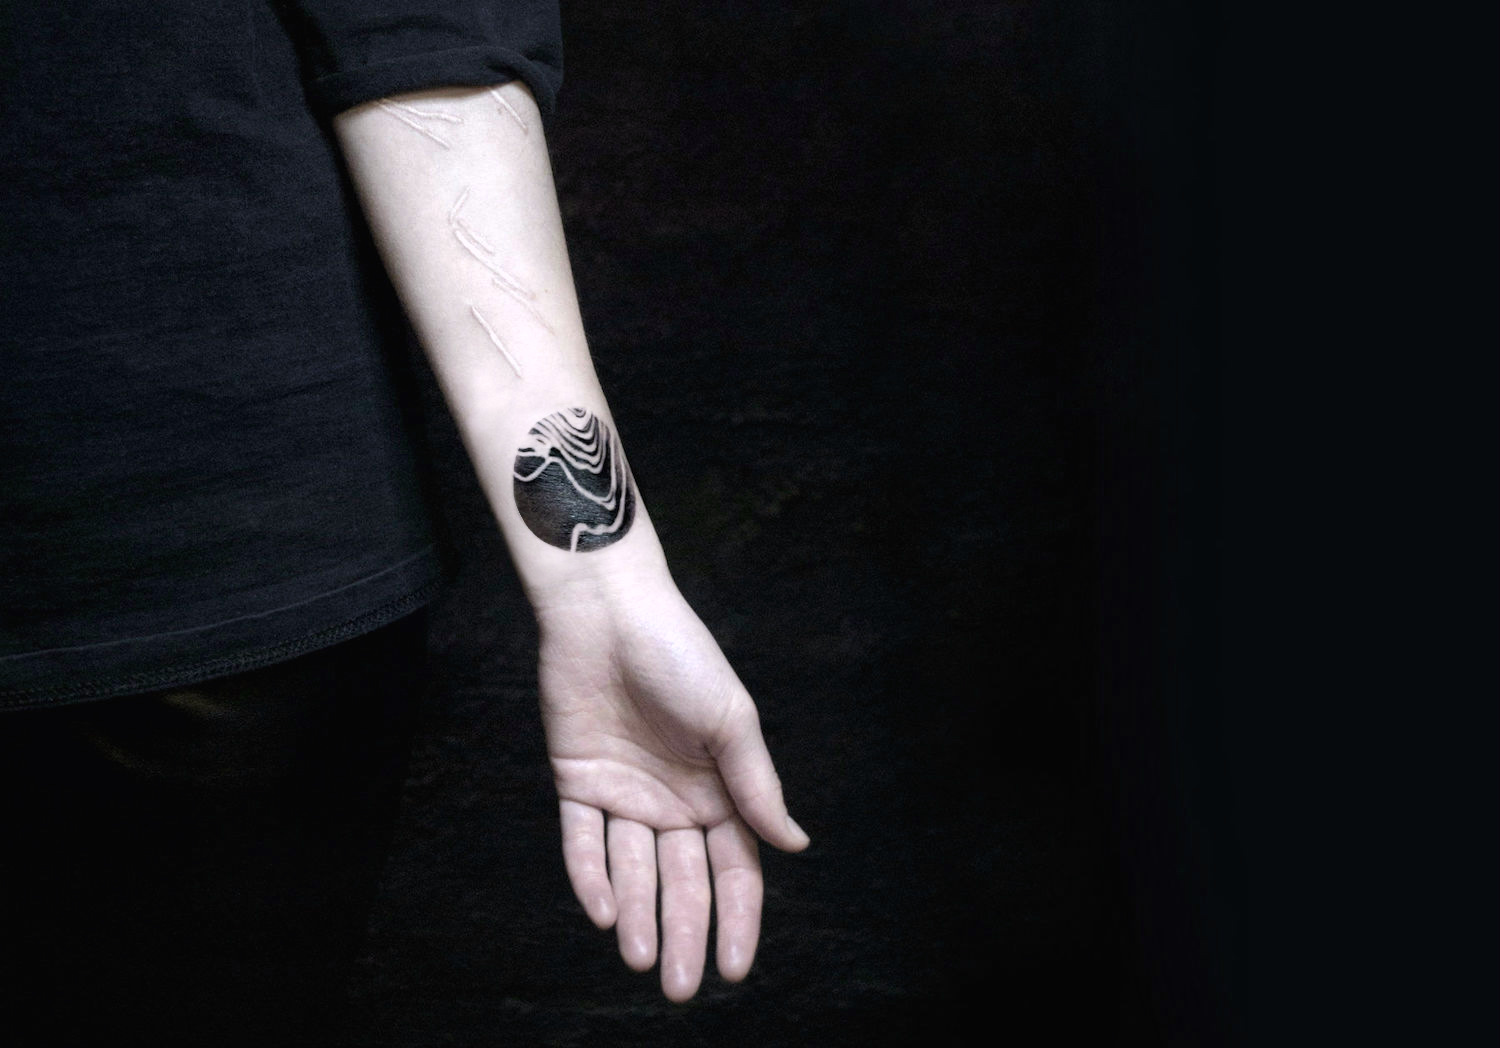 White and black ink tattoos by Nastasja Barashkova